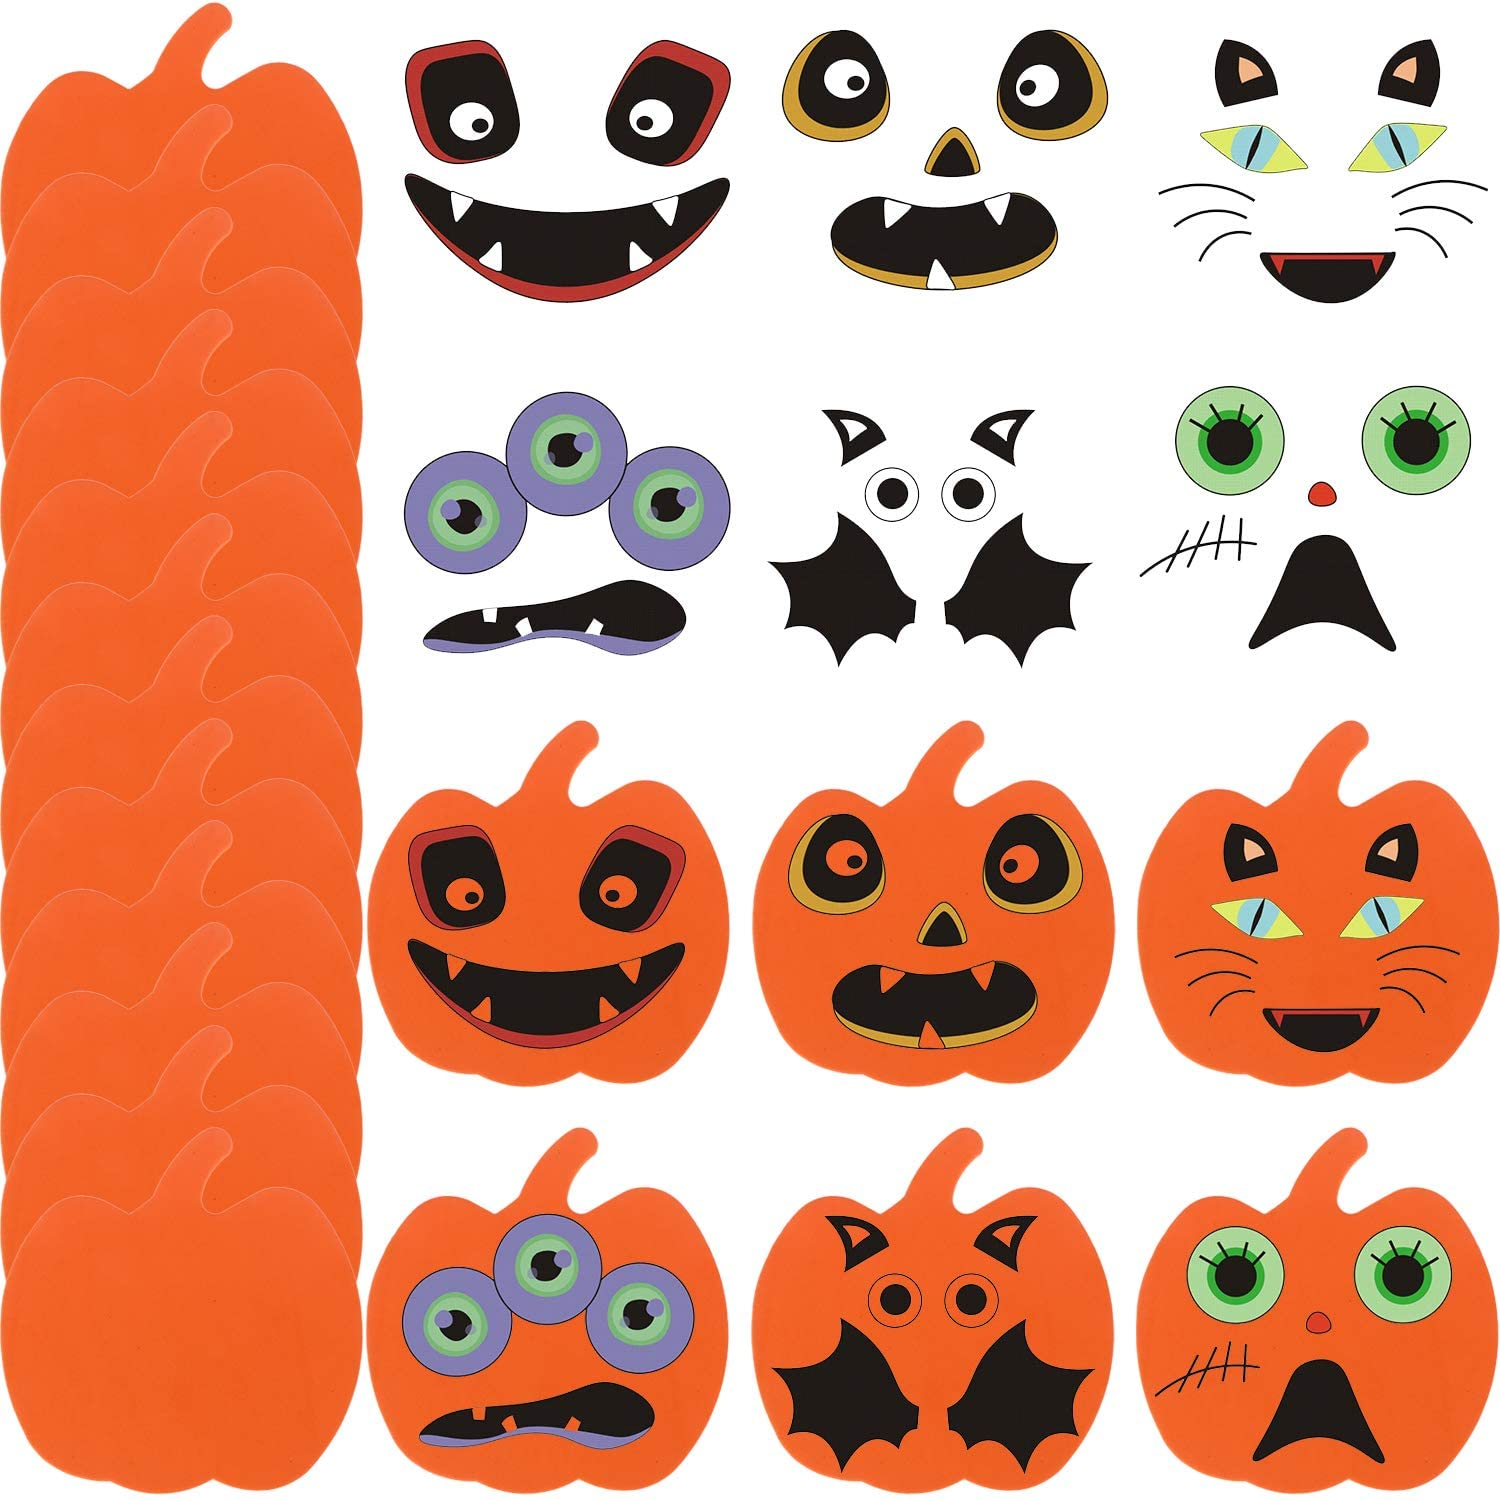 AOPOO 48 Pieces Halloween Pumpkins Shapes Foam Craft Kit and Craft Pumpkin Stickers for Halloween Thanksgiving Kids Party Decorations